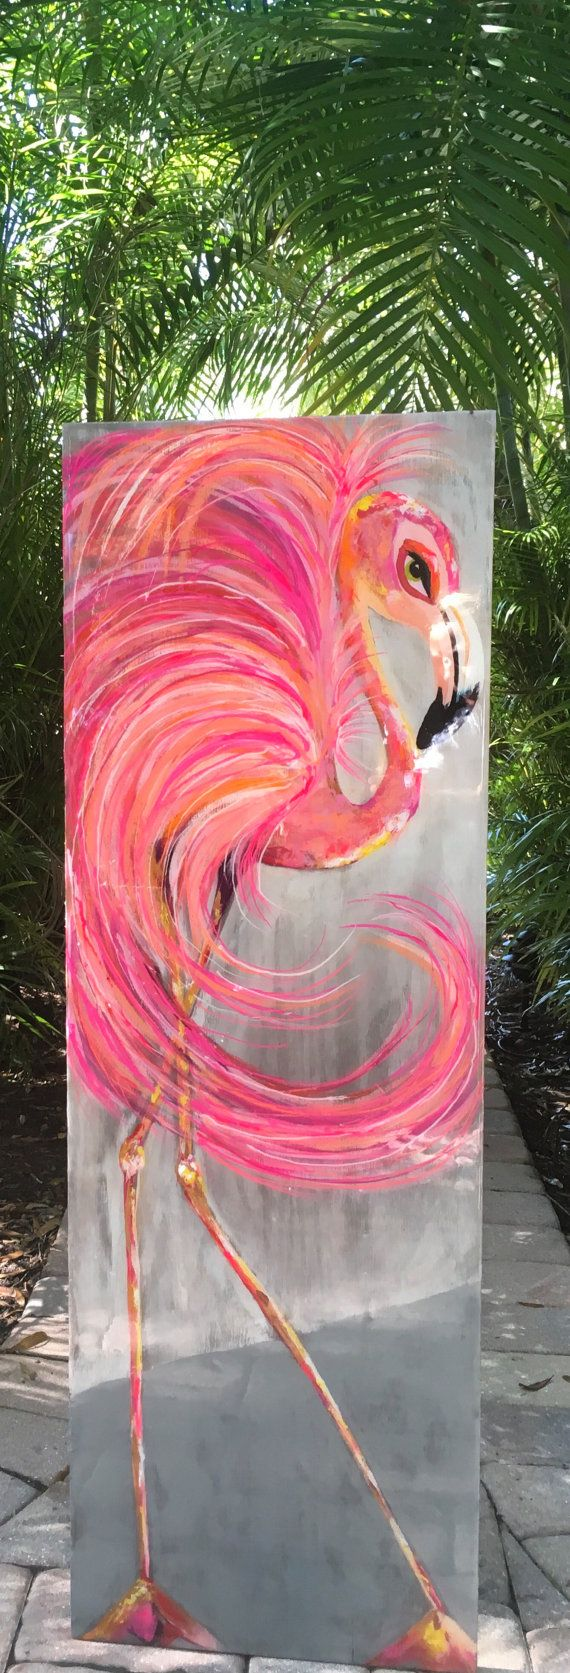 Flamingo painting in gorgeous swirls of  fluffy pink feathers!